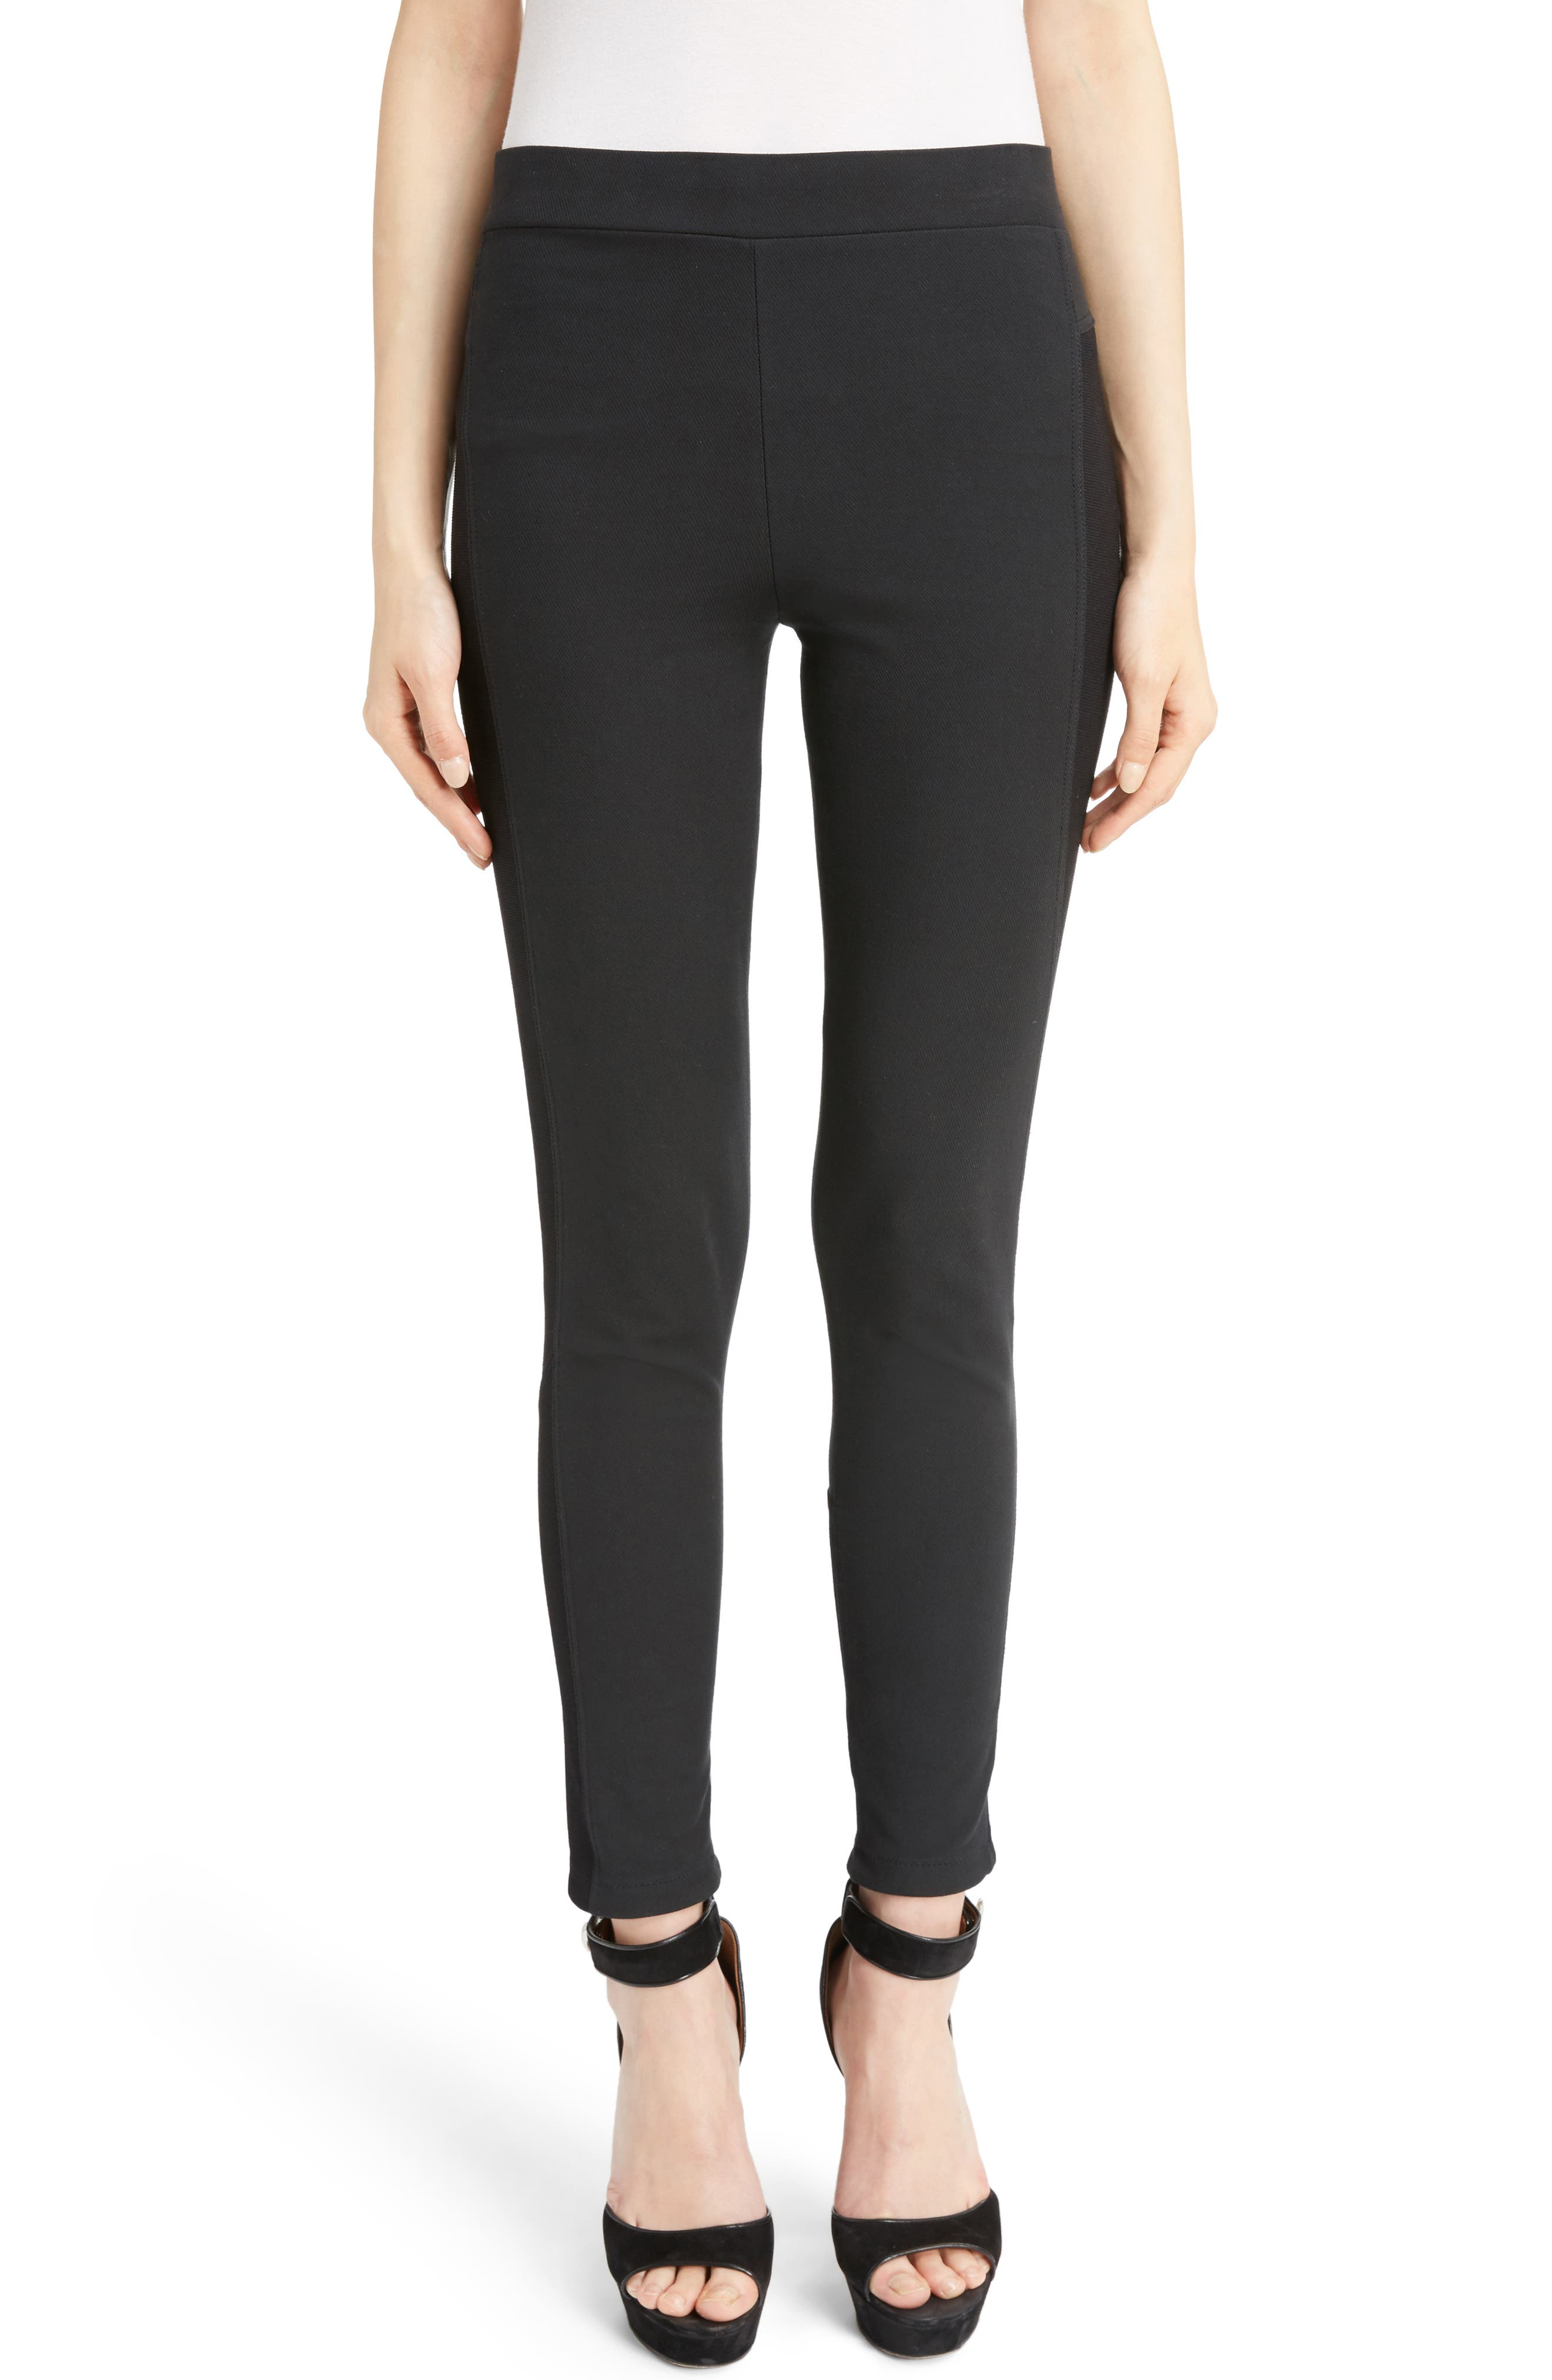 GIVENCHY Skinny Ankle Pants